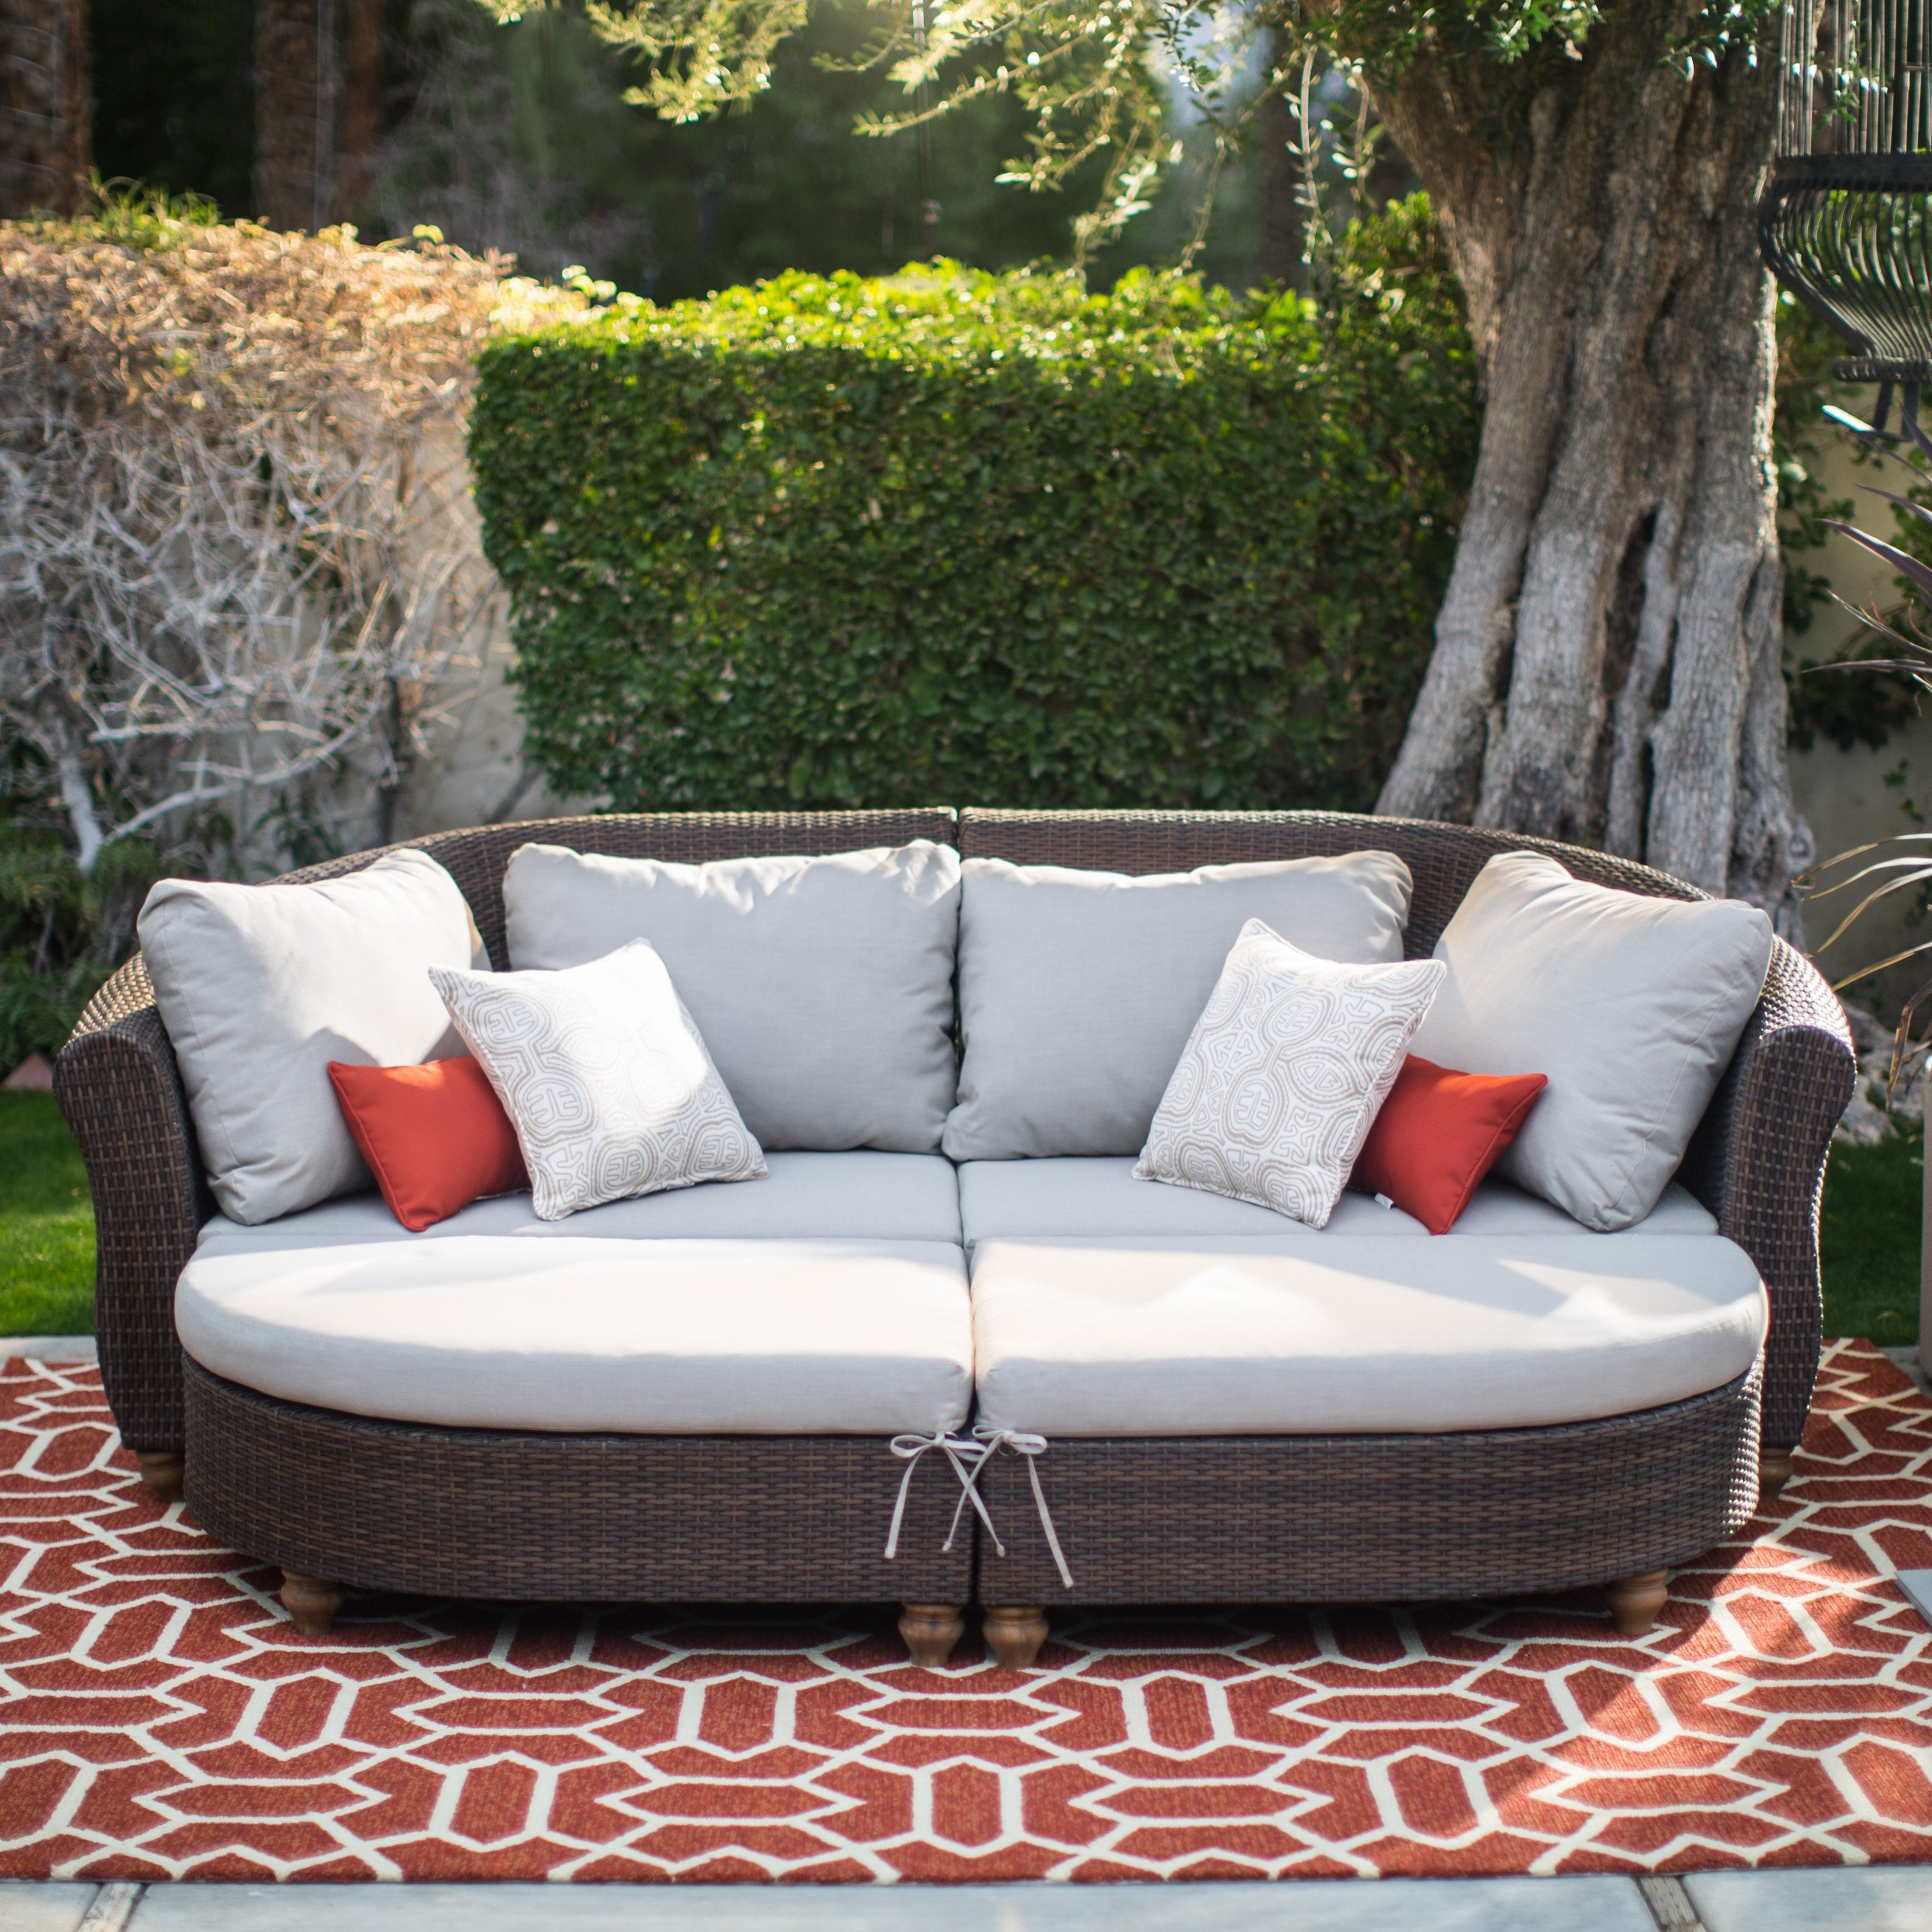 Chair : Outdoor Wicker Resin Piece Sectional Sofa Patio Furniture Regarding Most Popular Target Patio Furniture Conversation Sets (View 10 of 20)